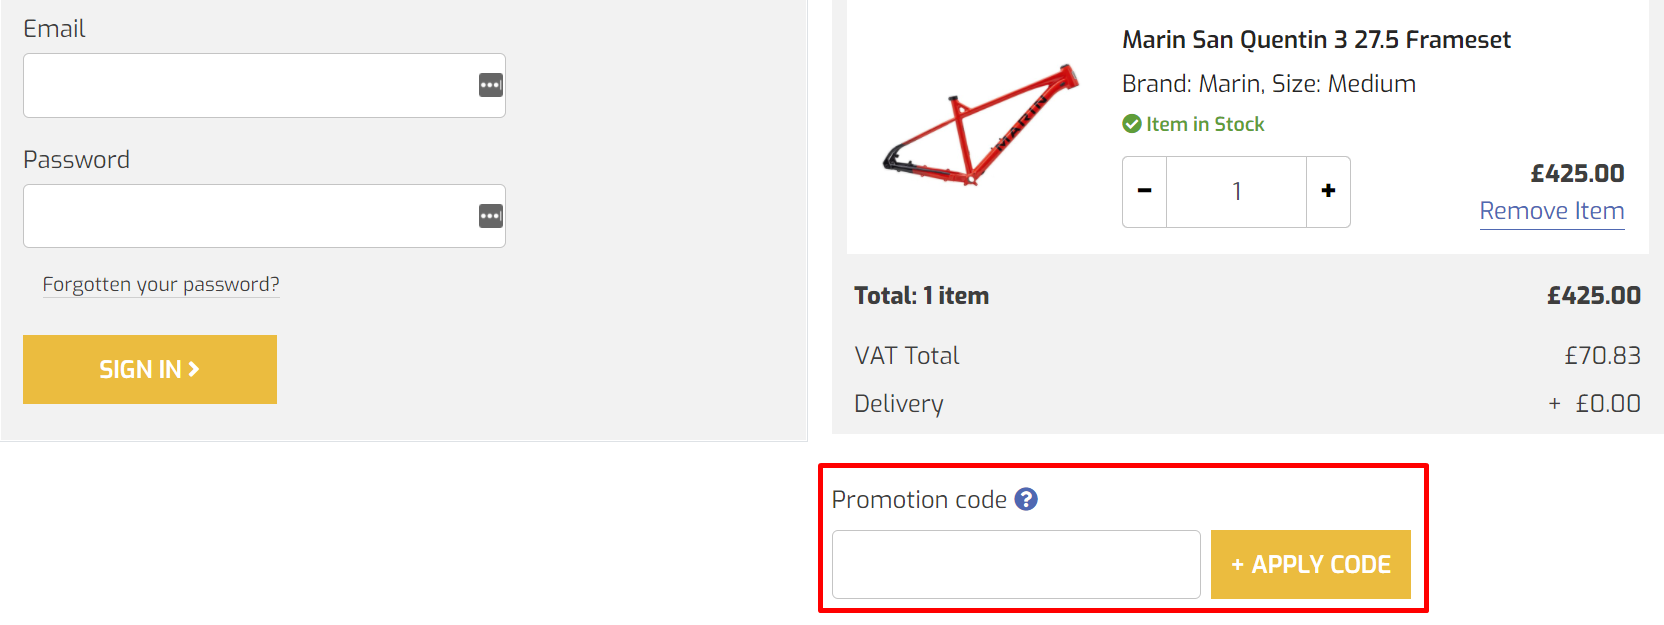 How do I use my AW Cycles promotion code?